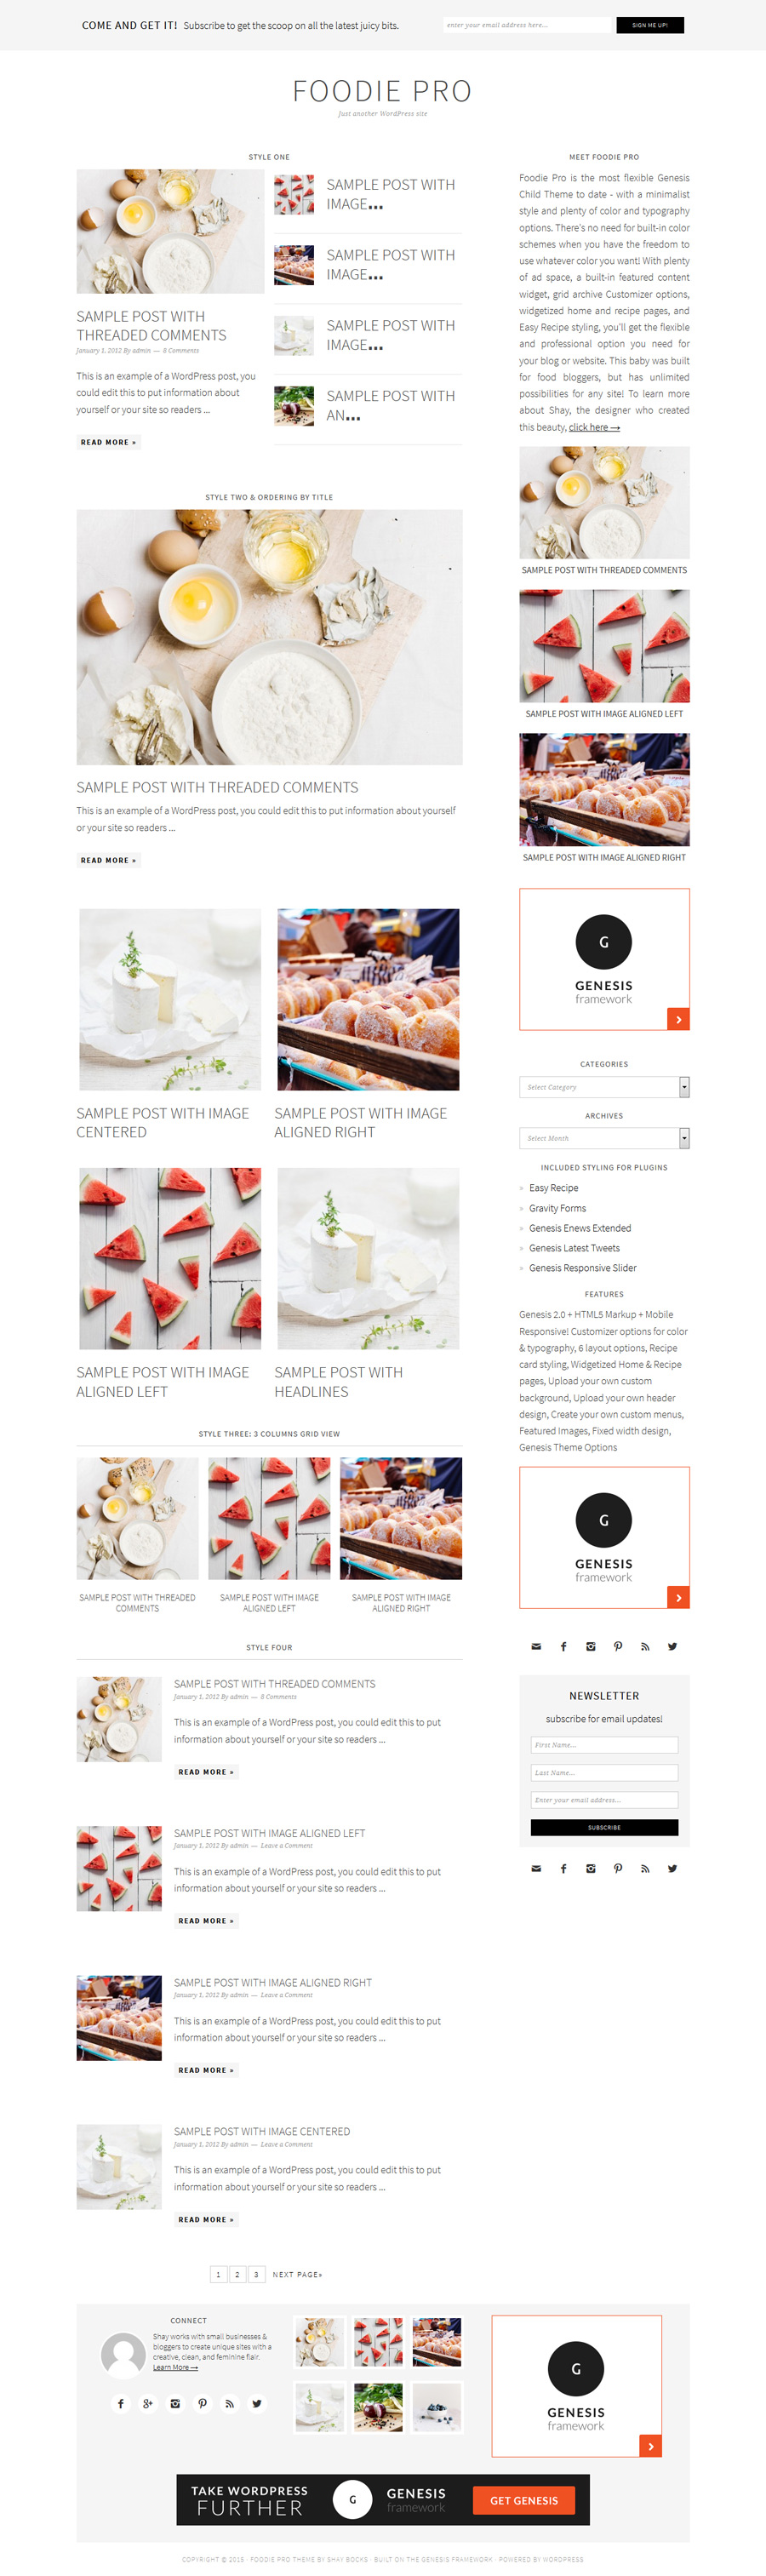 Foodie PRO & Genesis Featured Post Combo Plugin